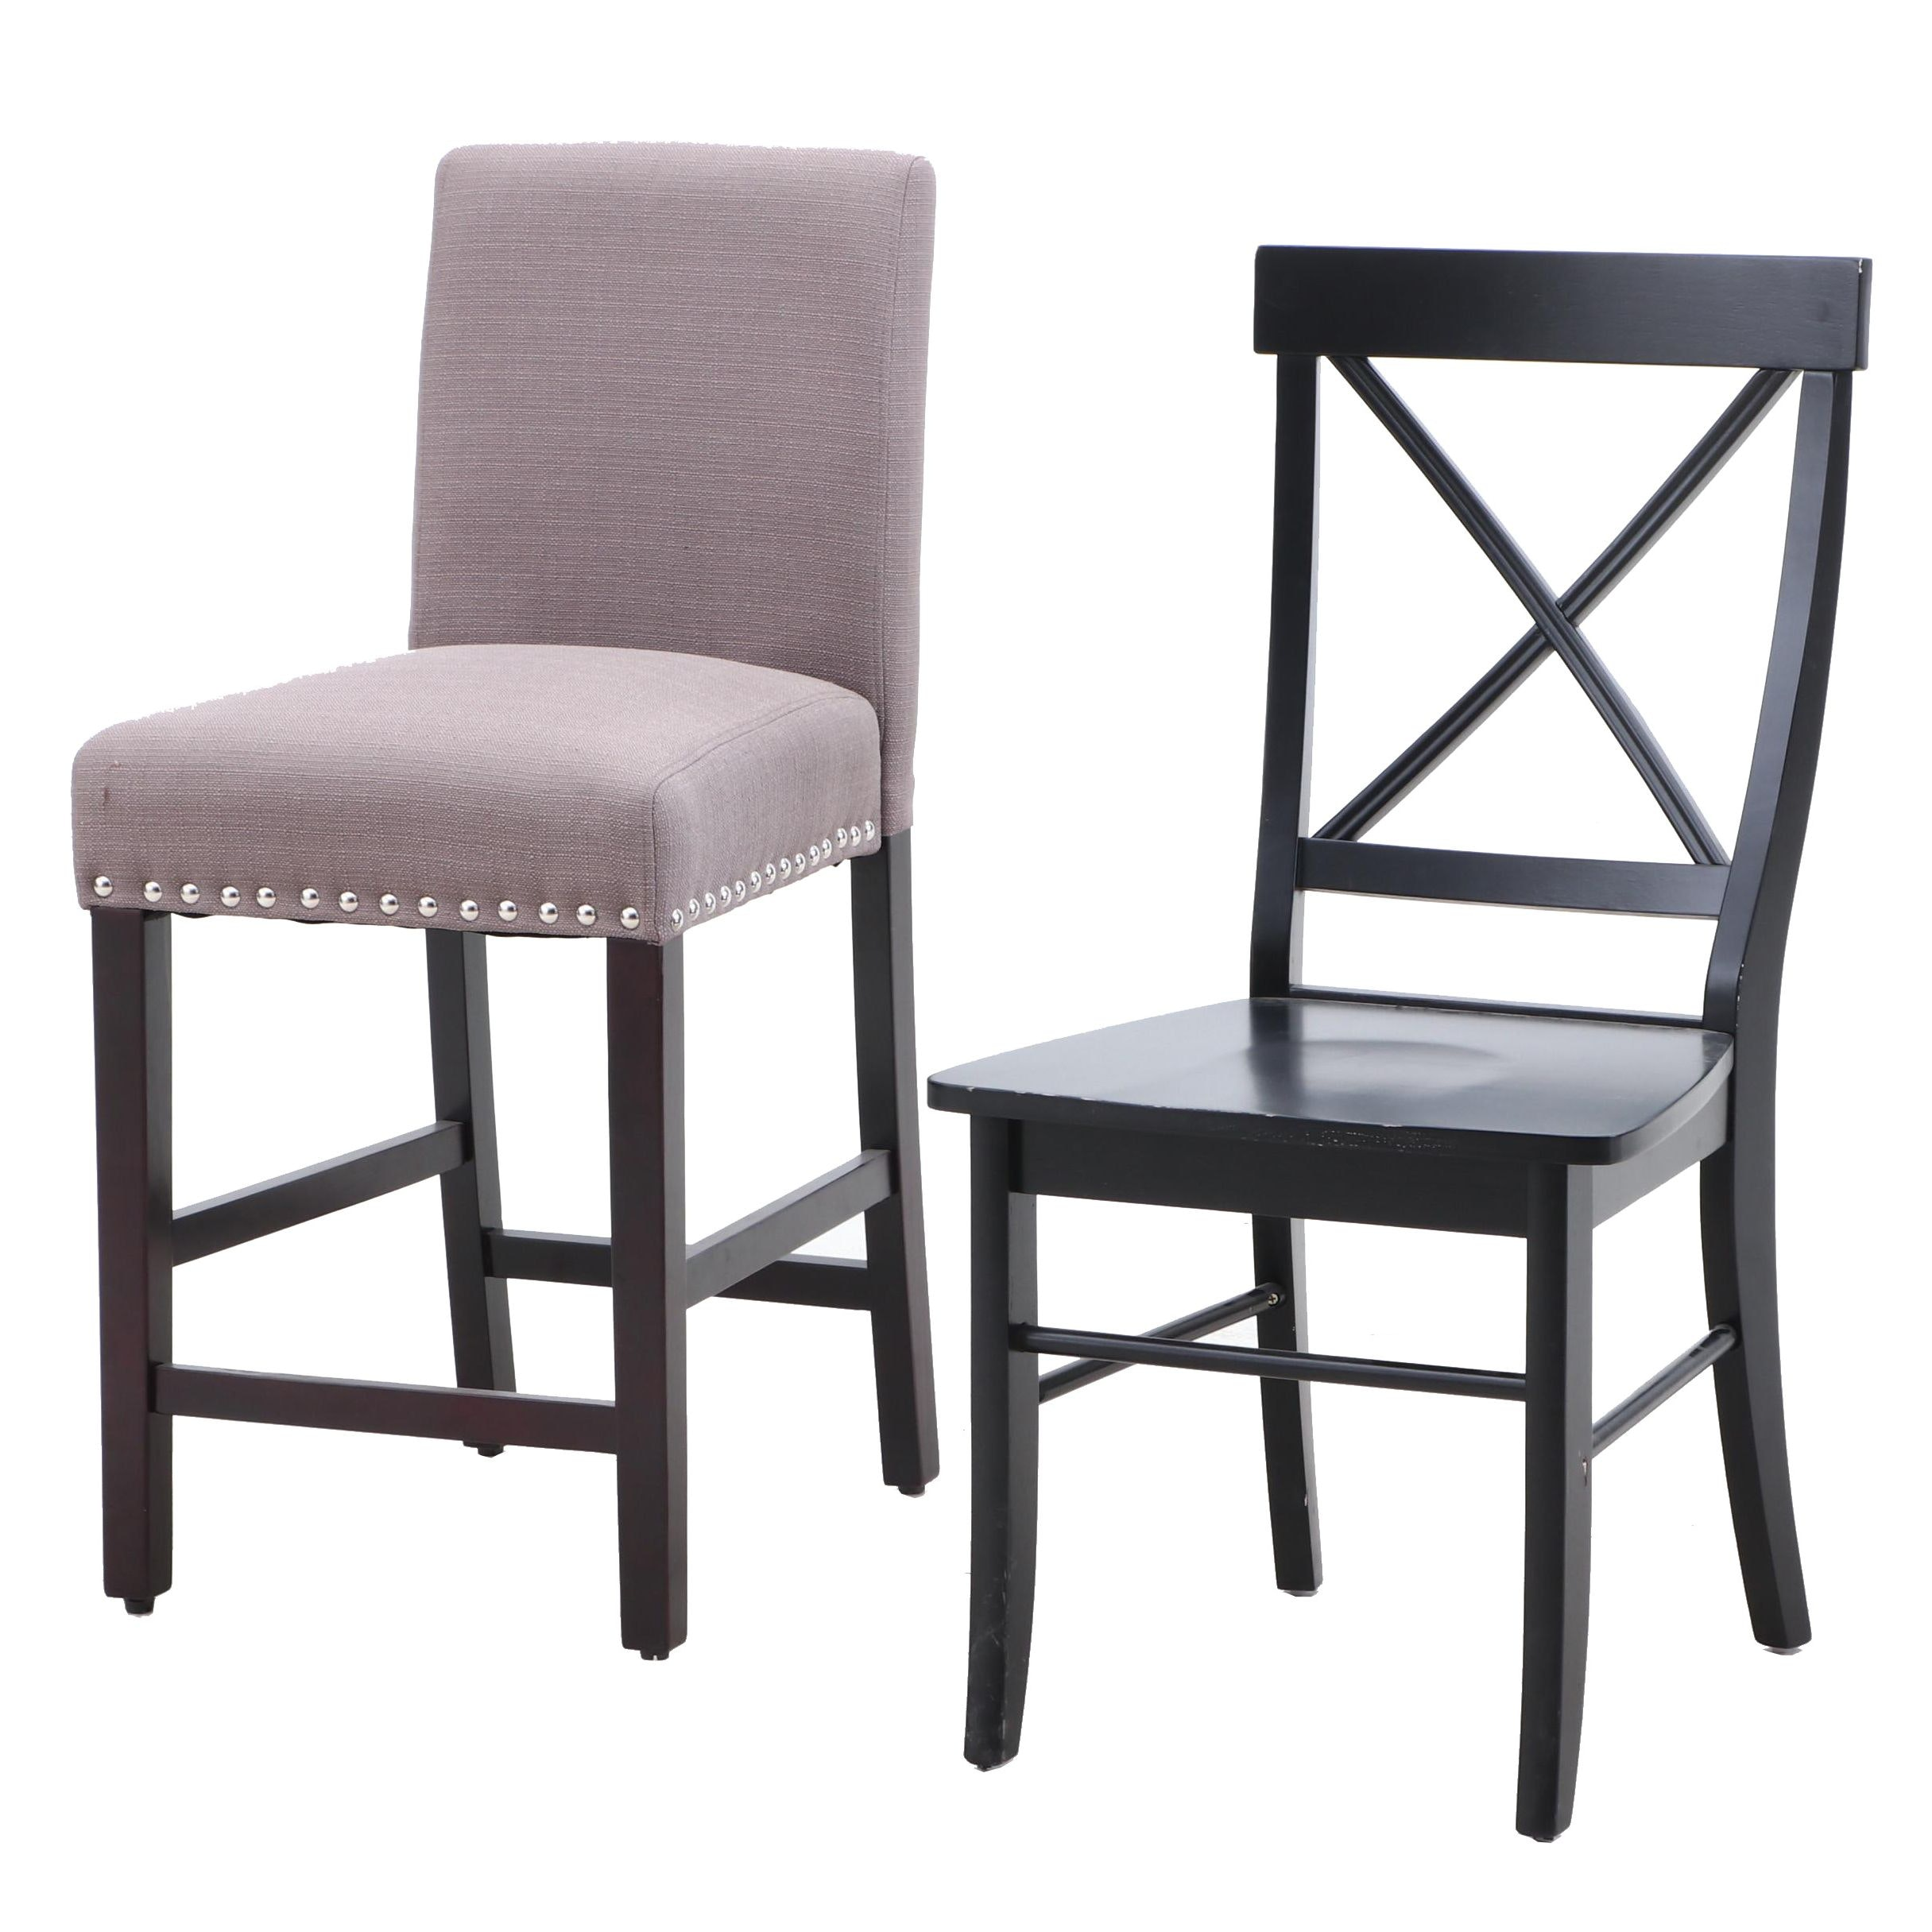 Pair of Contemporary Side Chairs